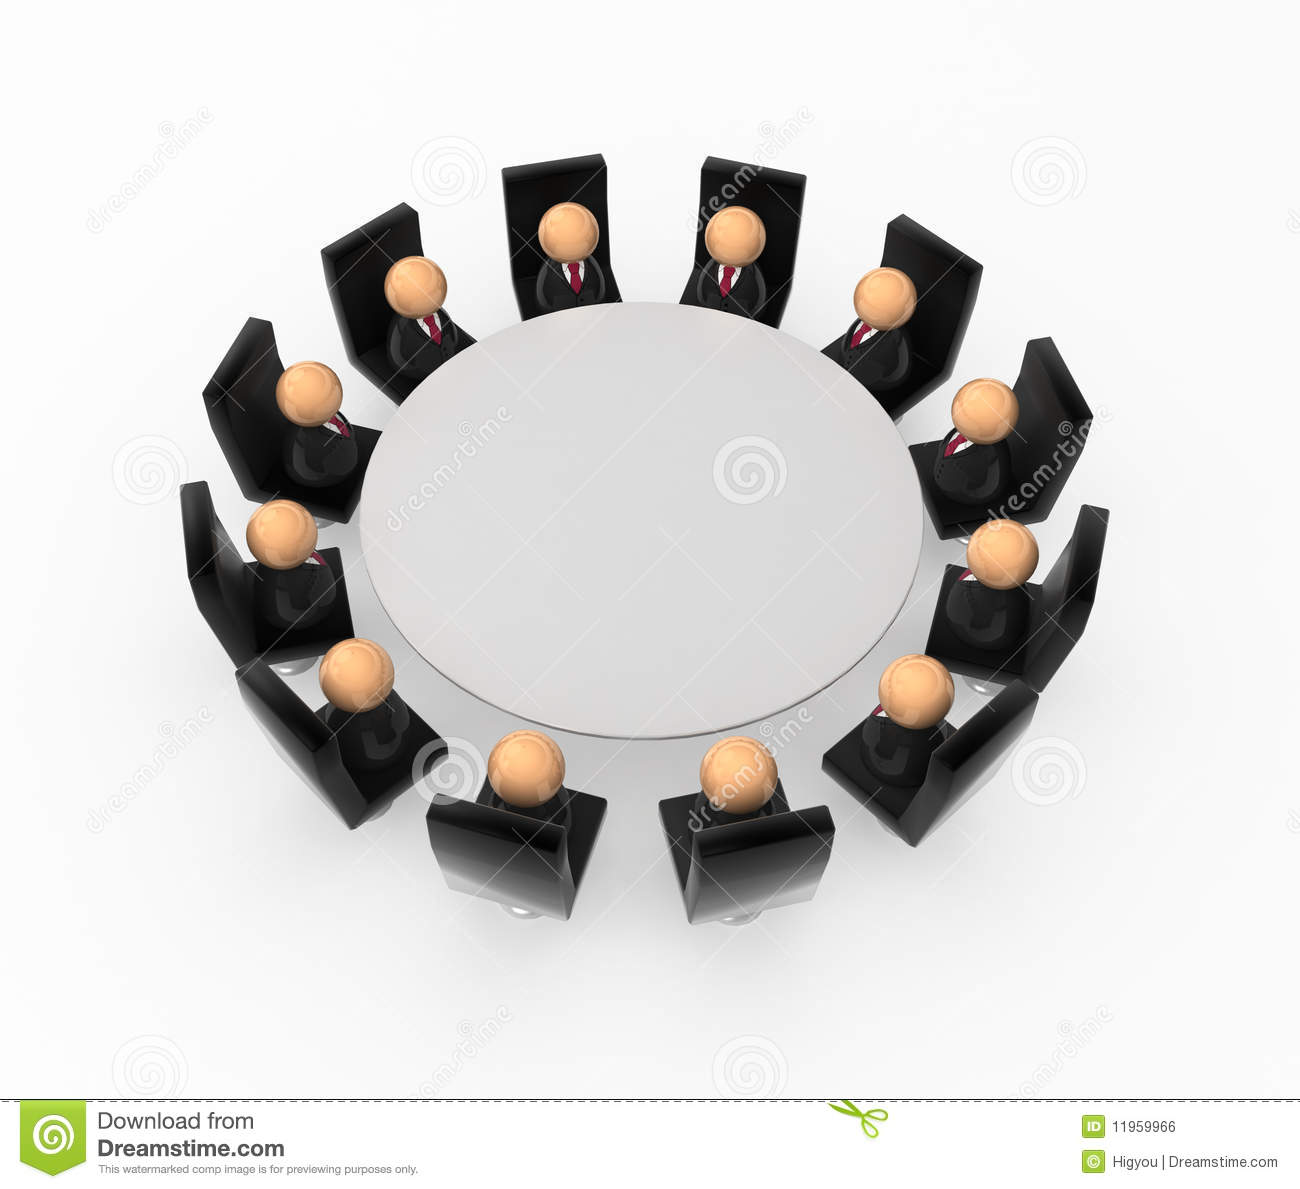 Business Symbols Round Table Royalty Free Stock Image